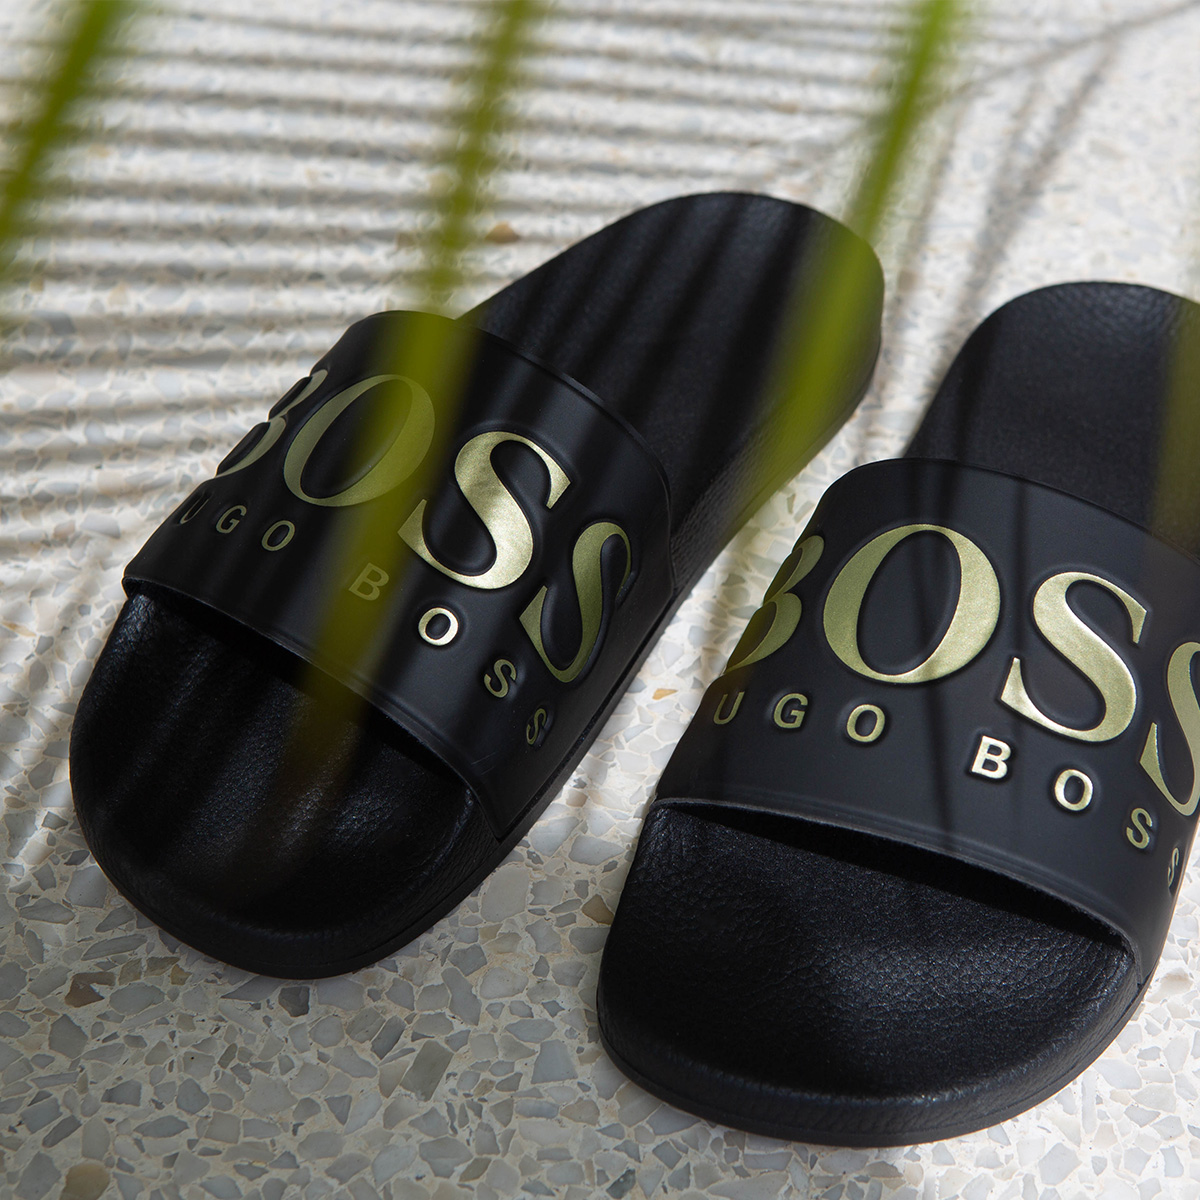 a pair of black Hugo Boss sliders